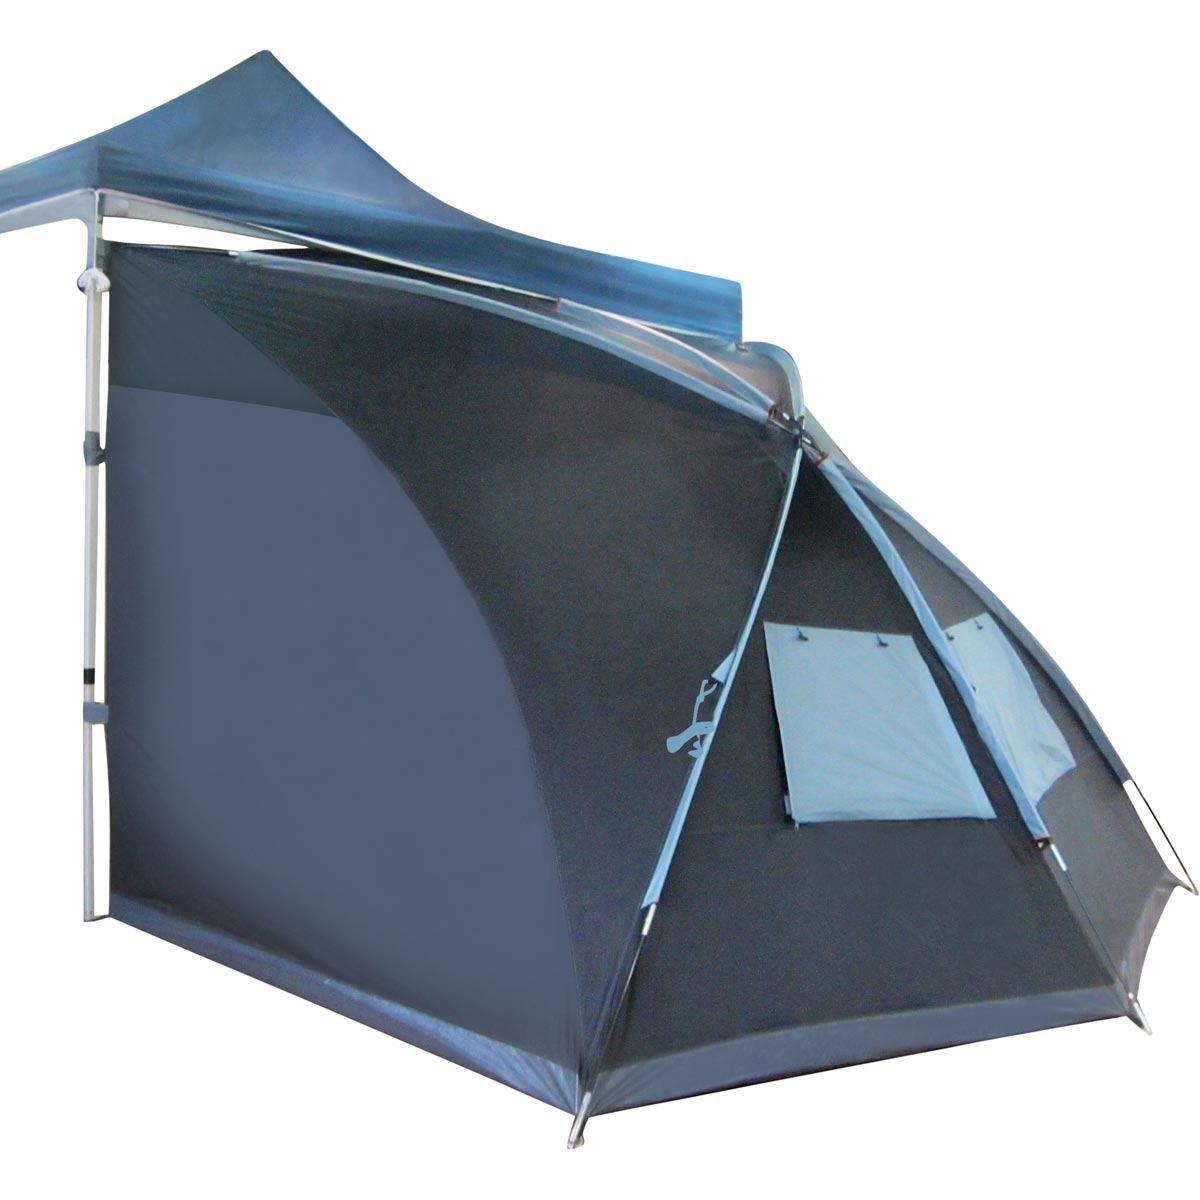 Wanderer Gazebo Hub - 6 Person - BCF Australia  sc 1 st  Pinterest & Wanderer Gazebo Hub - 6 Person - BCF Australia | Outdoor Camping ...